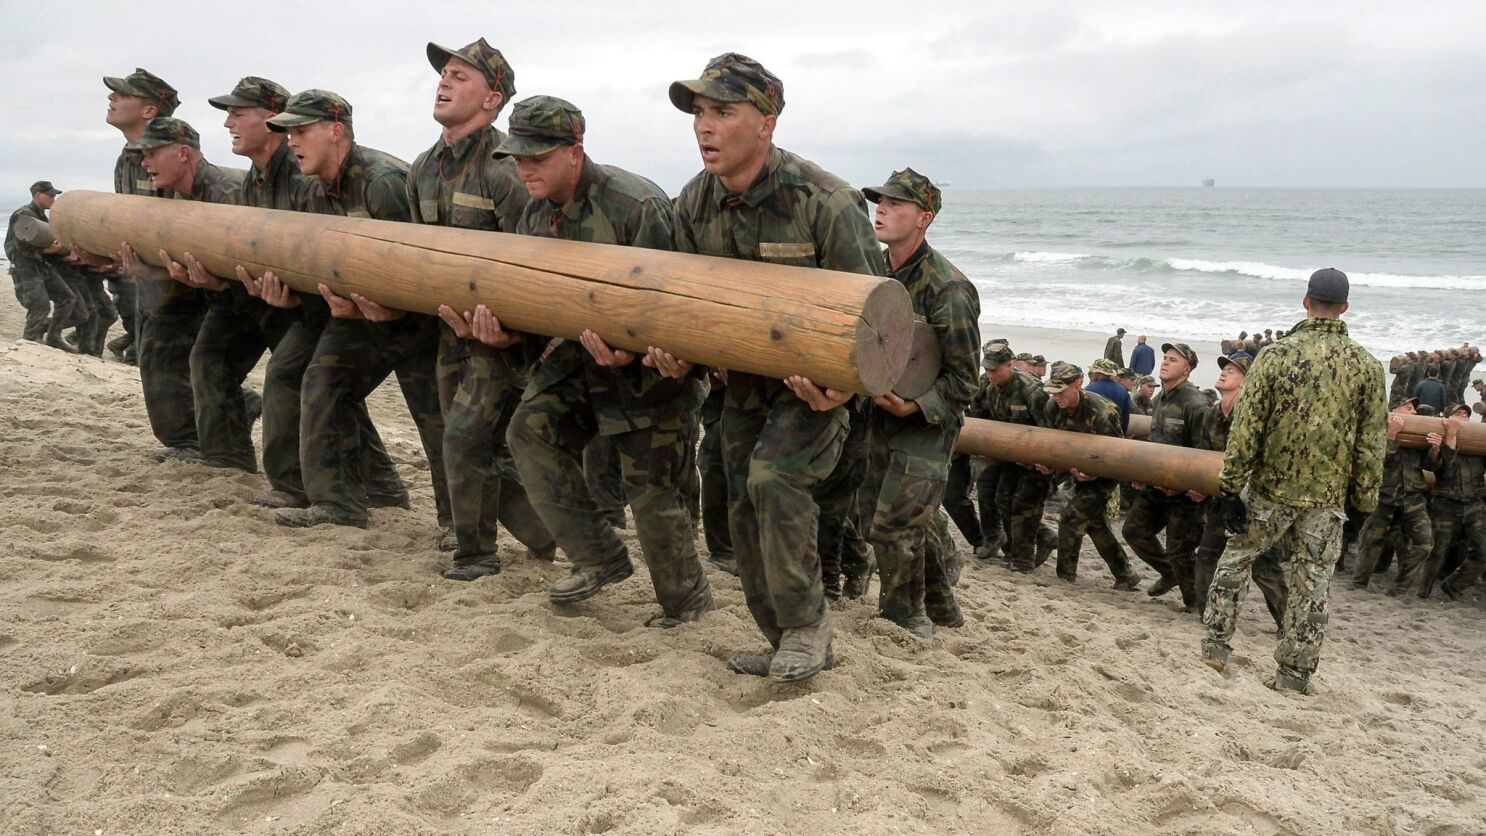 1st woman drops out of Navy SEAL training pipeline - The San Diego